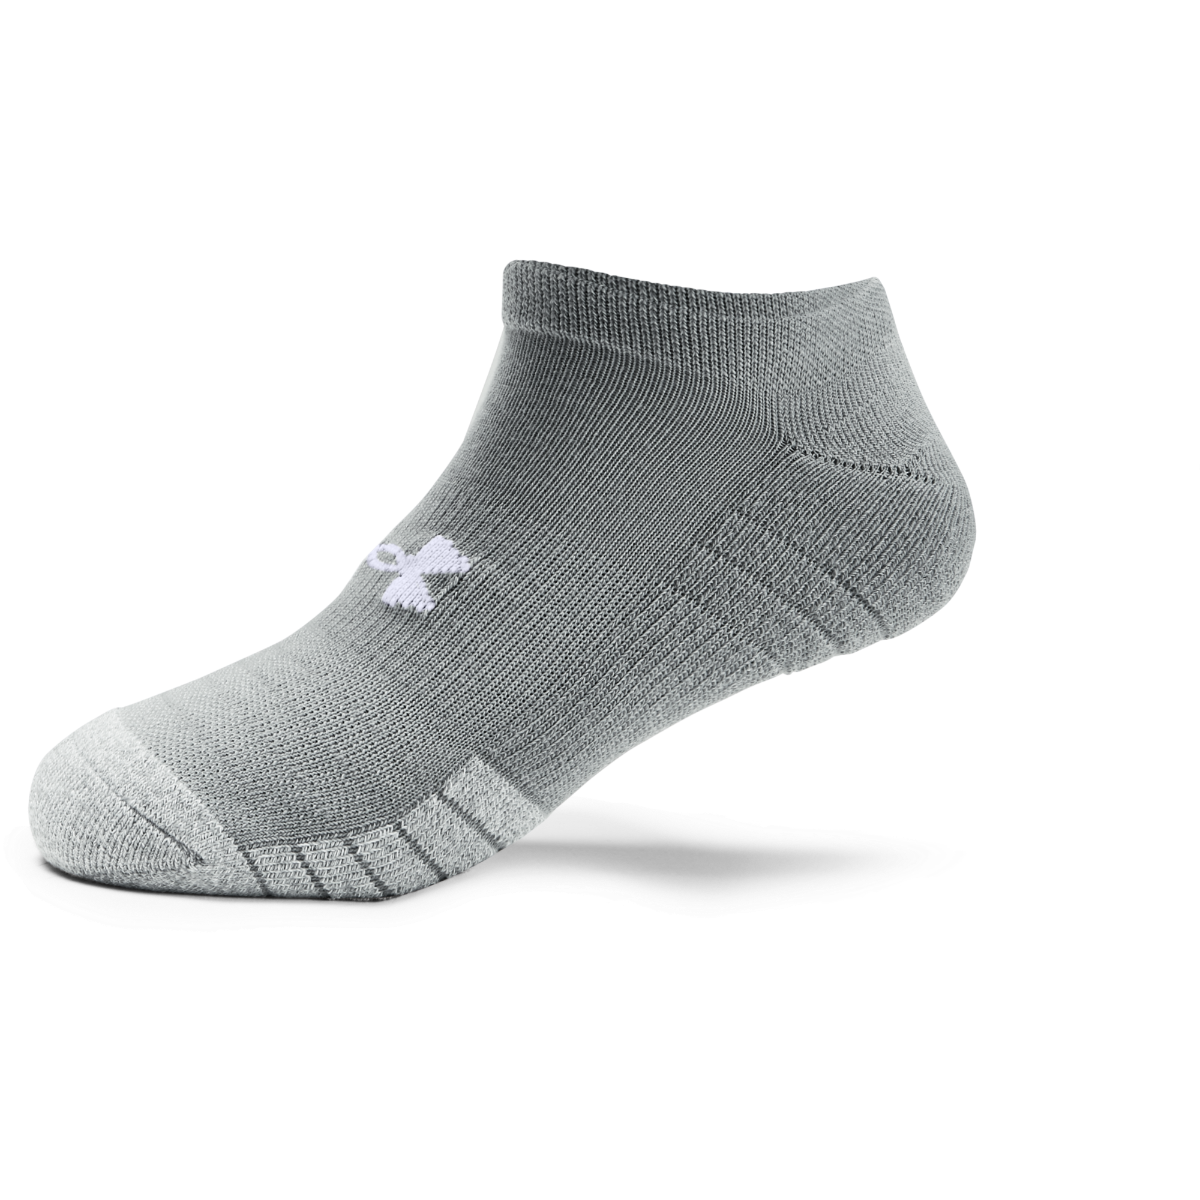 Under Armour ponožky UA Heatgear NS 1346755-035  L